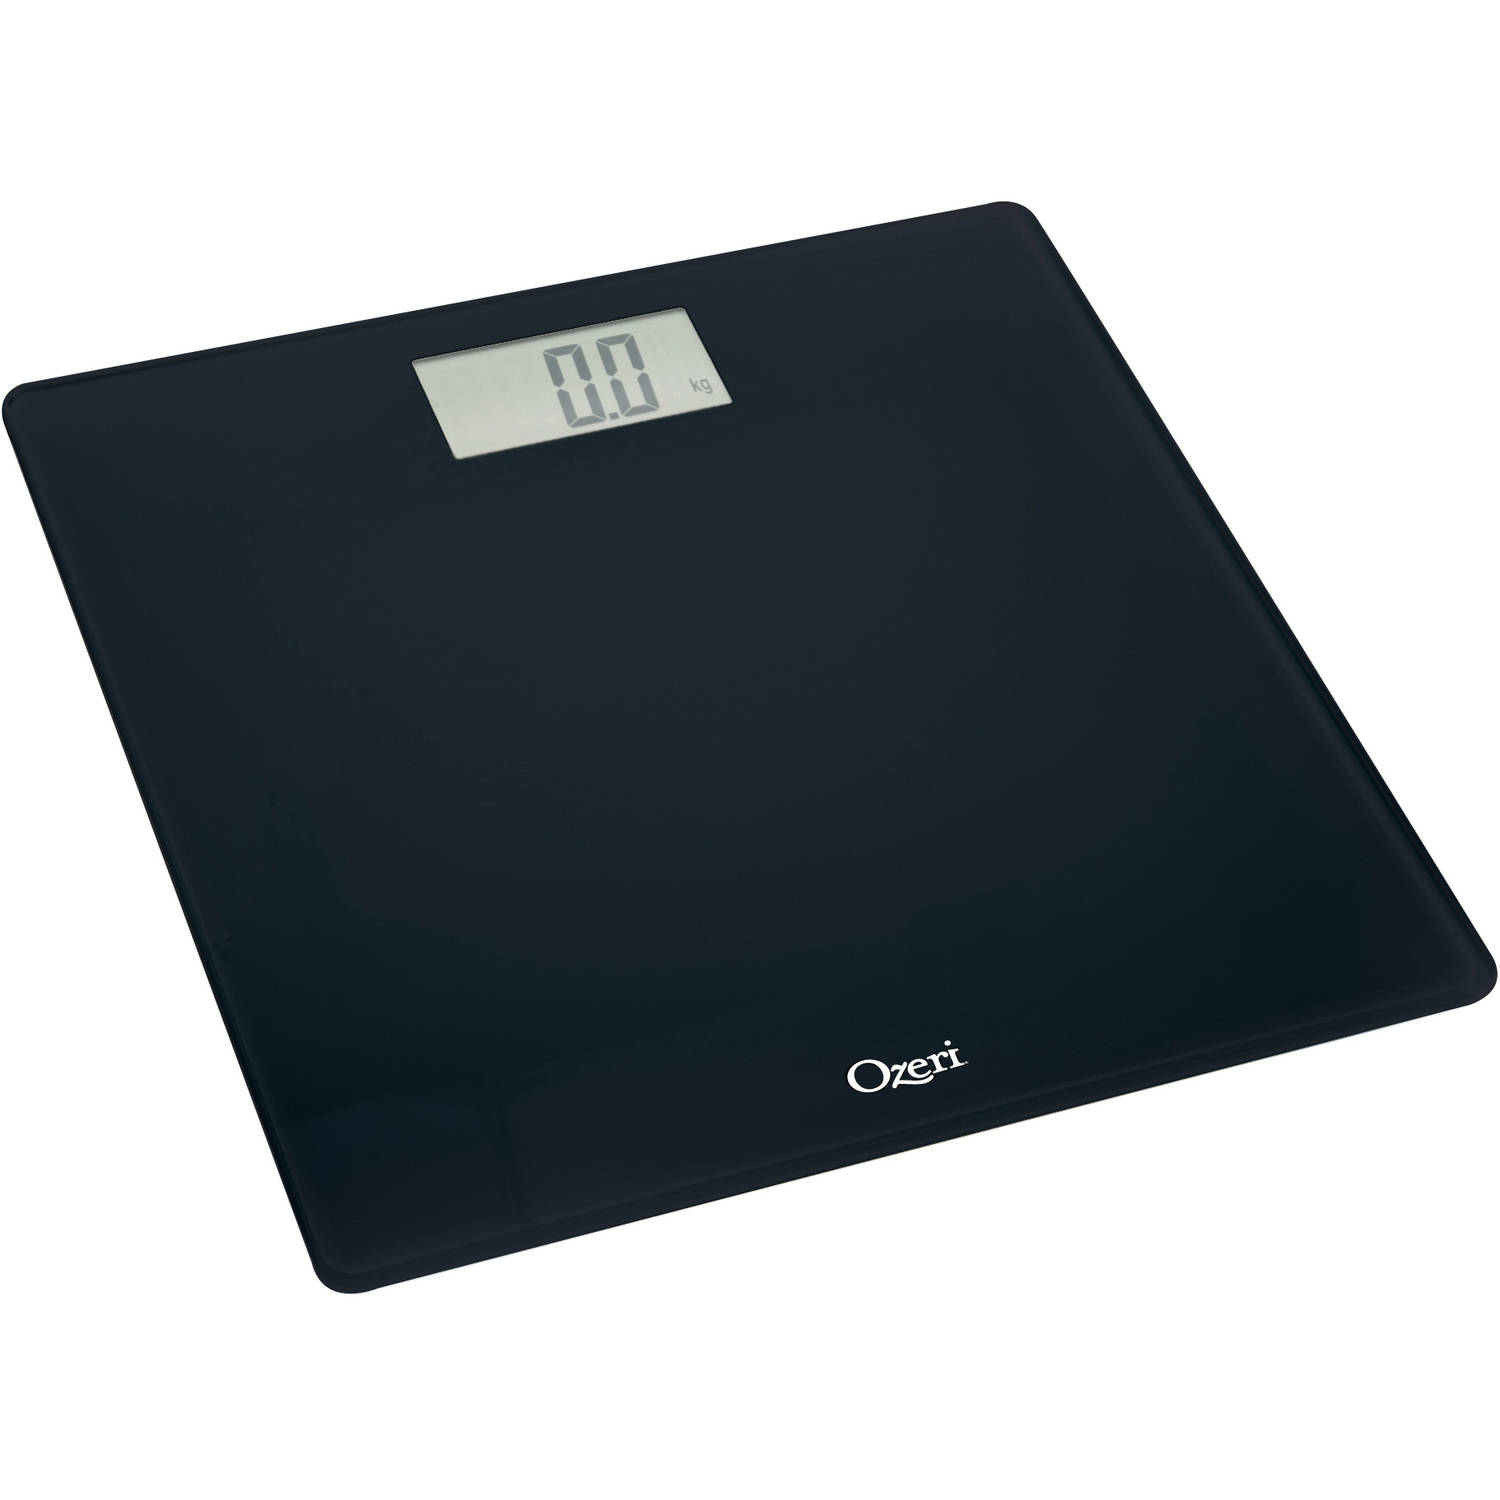 ozeri precision digital bath scale (400 lbs edition), in tempered